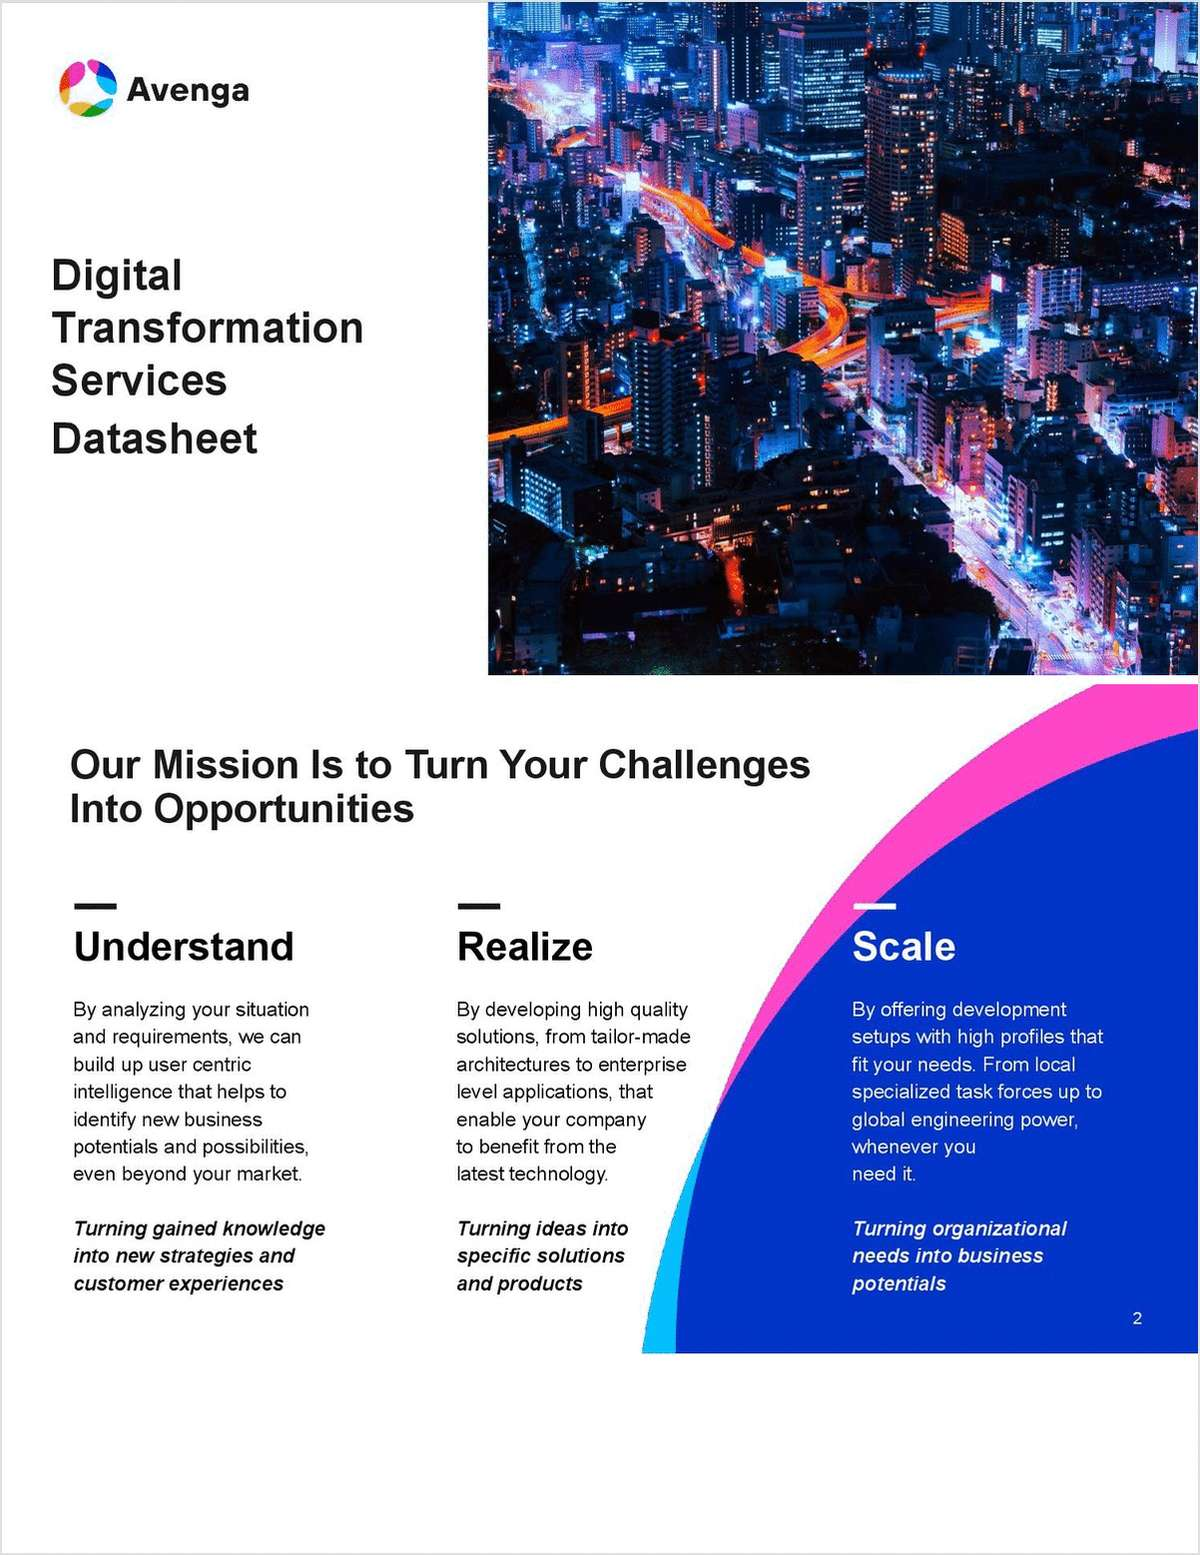 Avenga Digital Transformation Services Datasheet.  Why it matters to have a trusted partner by your side.